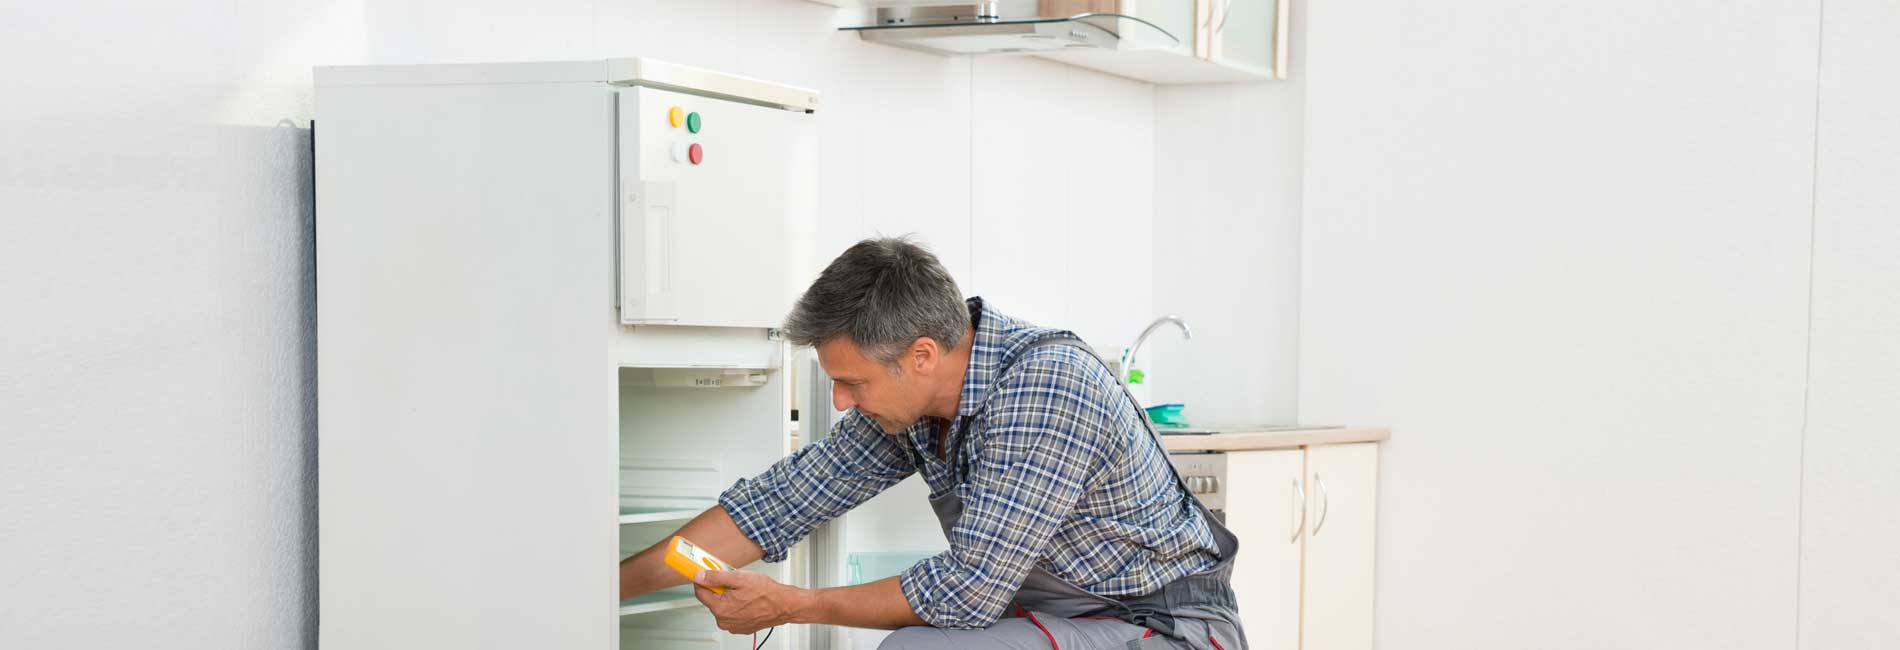 Whirlpool Fridge Repair in Chinmaya Nagar